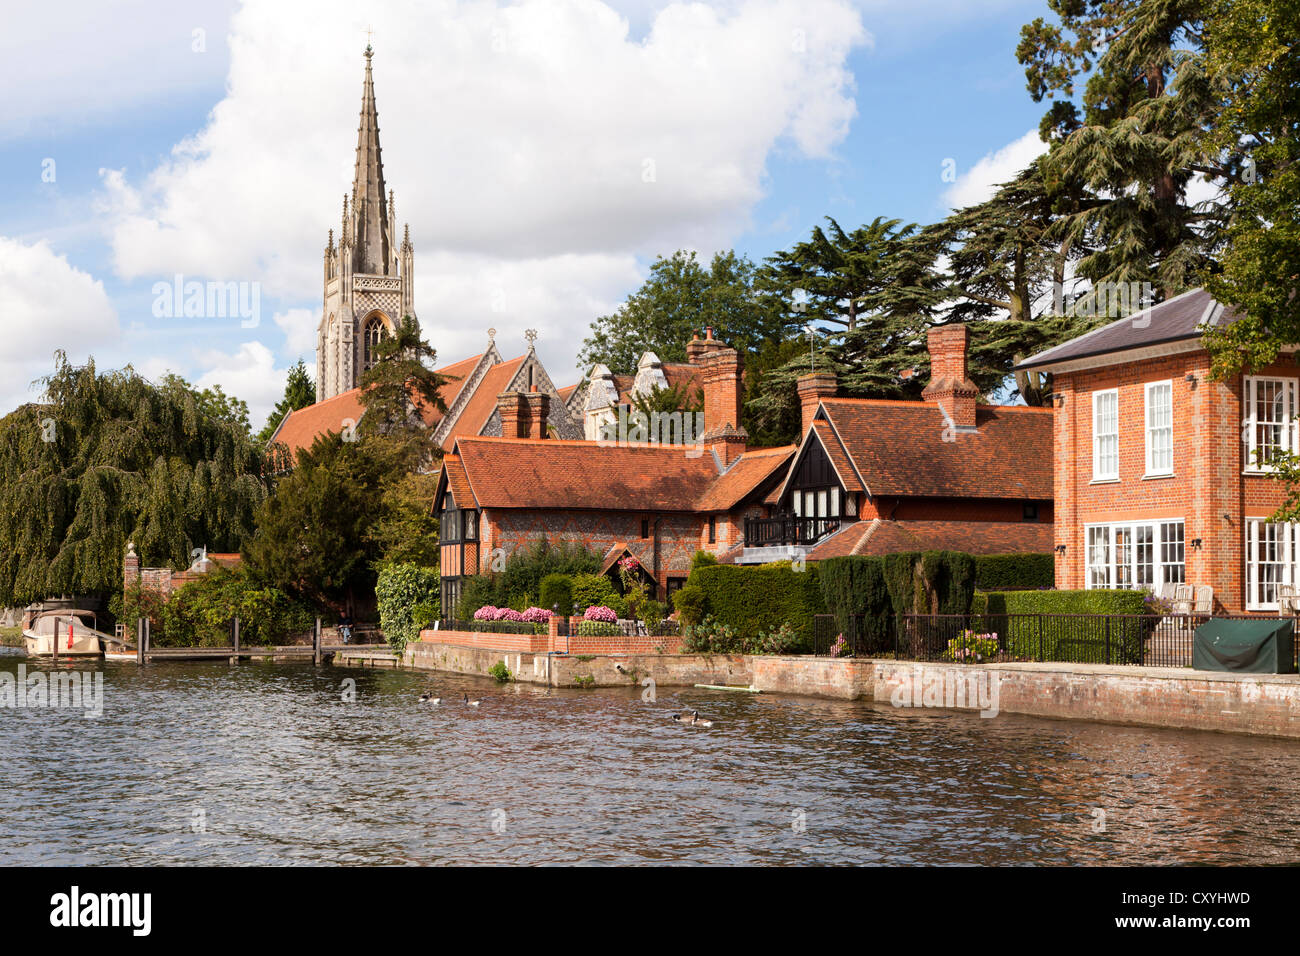 The River Thames at Marlow, Buckinghamshire, UK - Stock Image